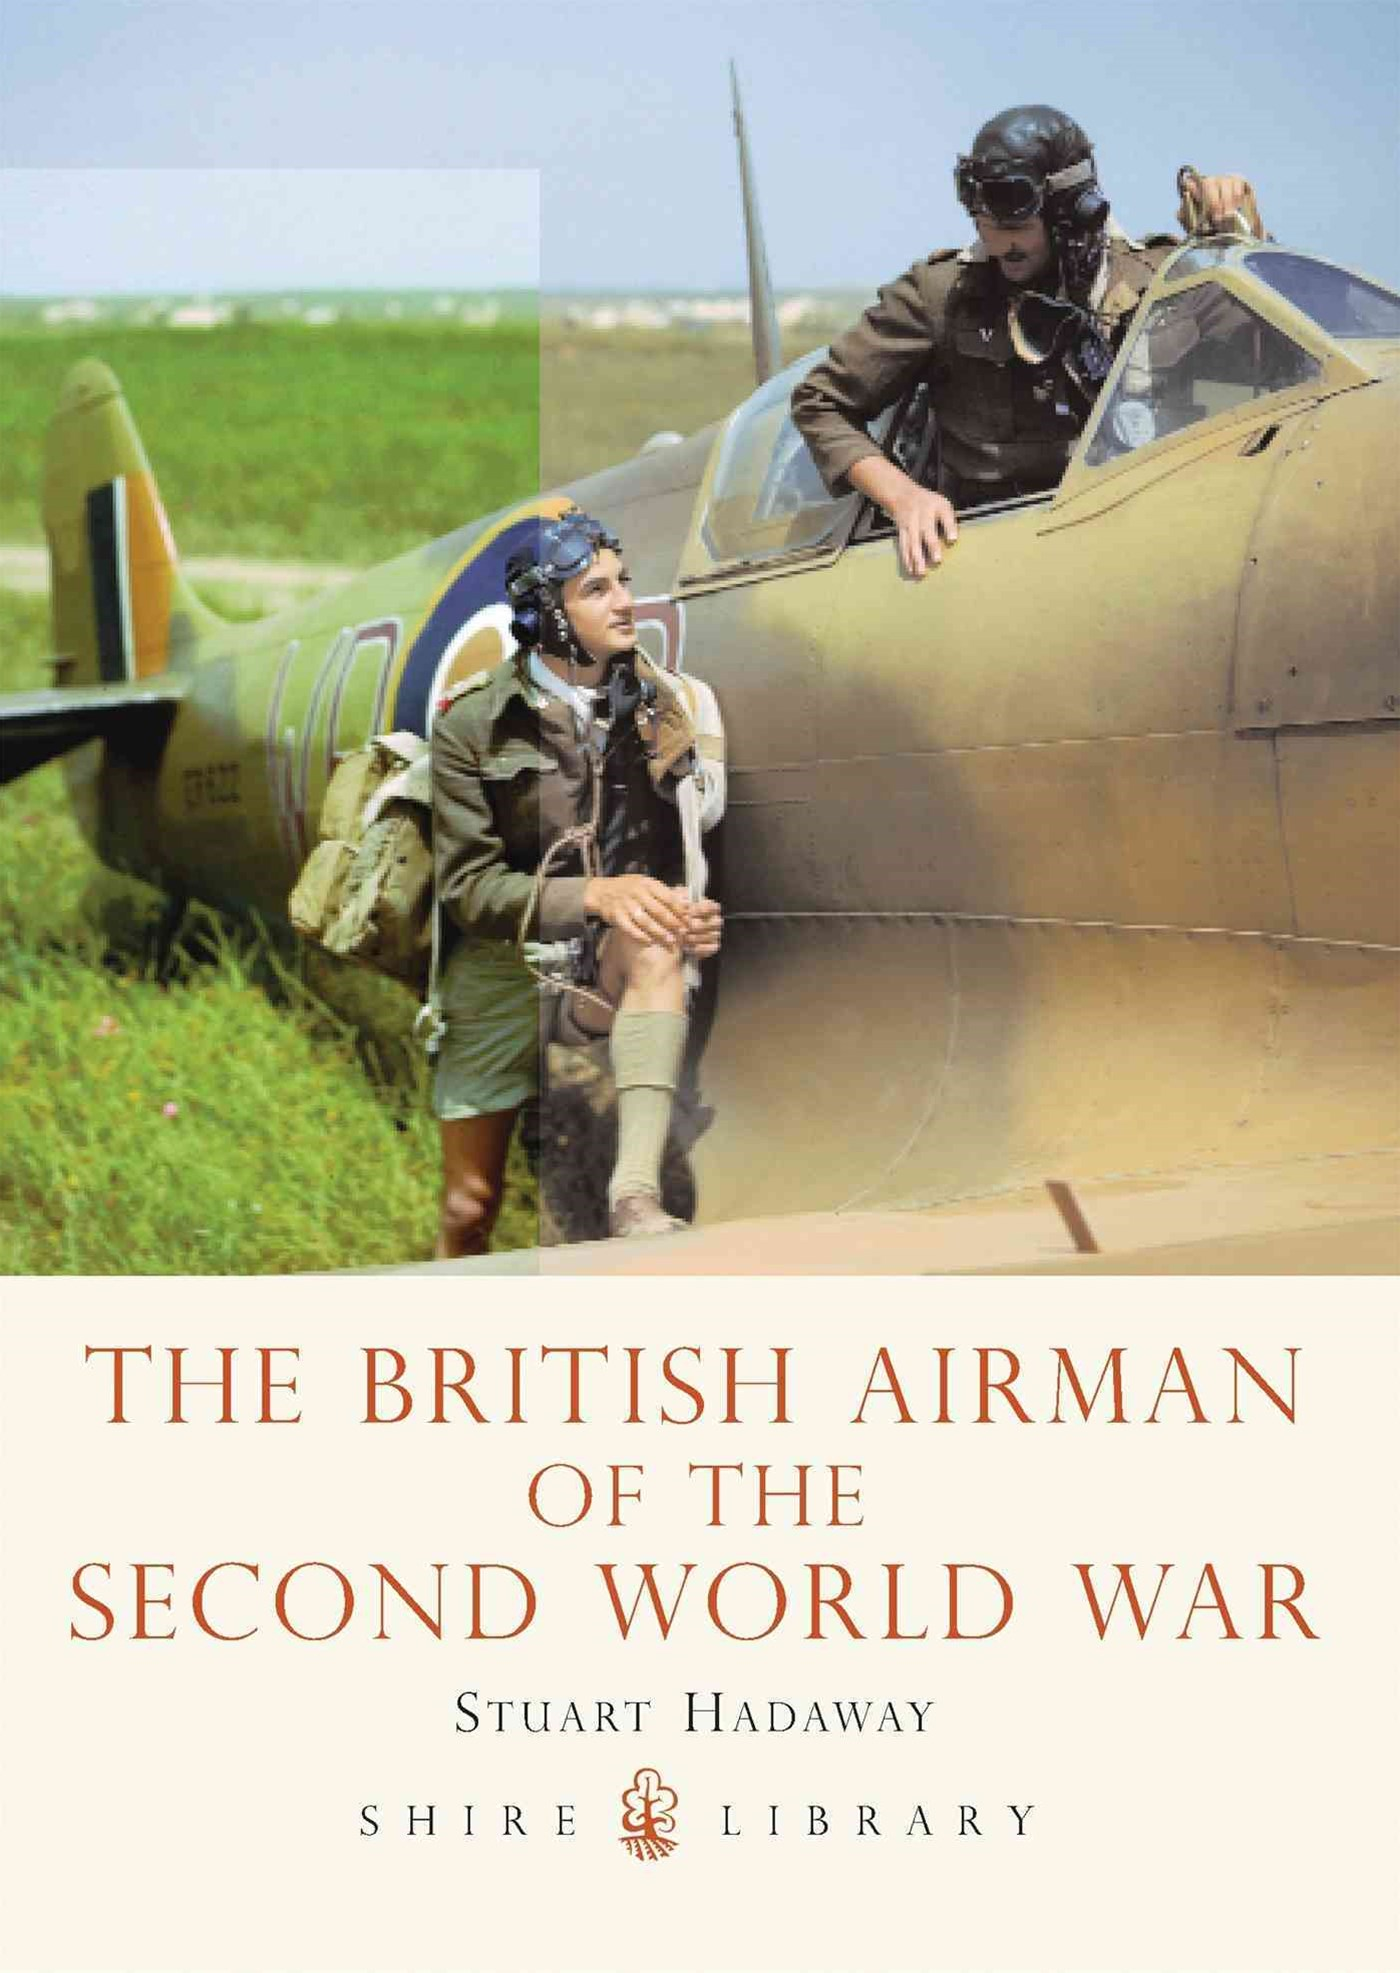 British Airman of the Second World War